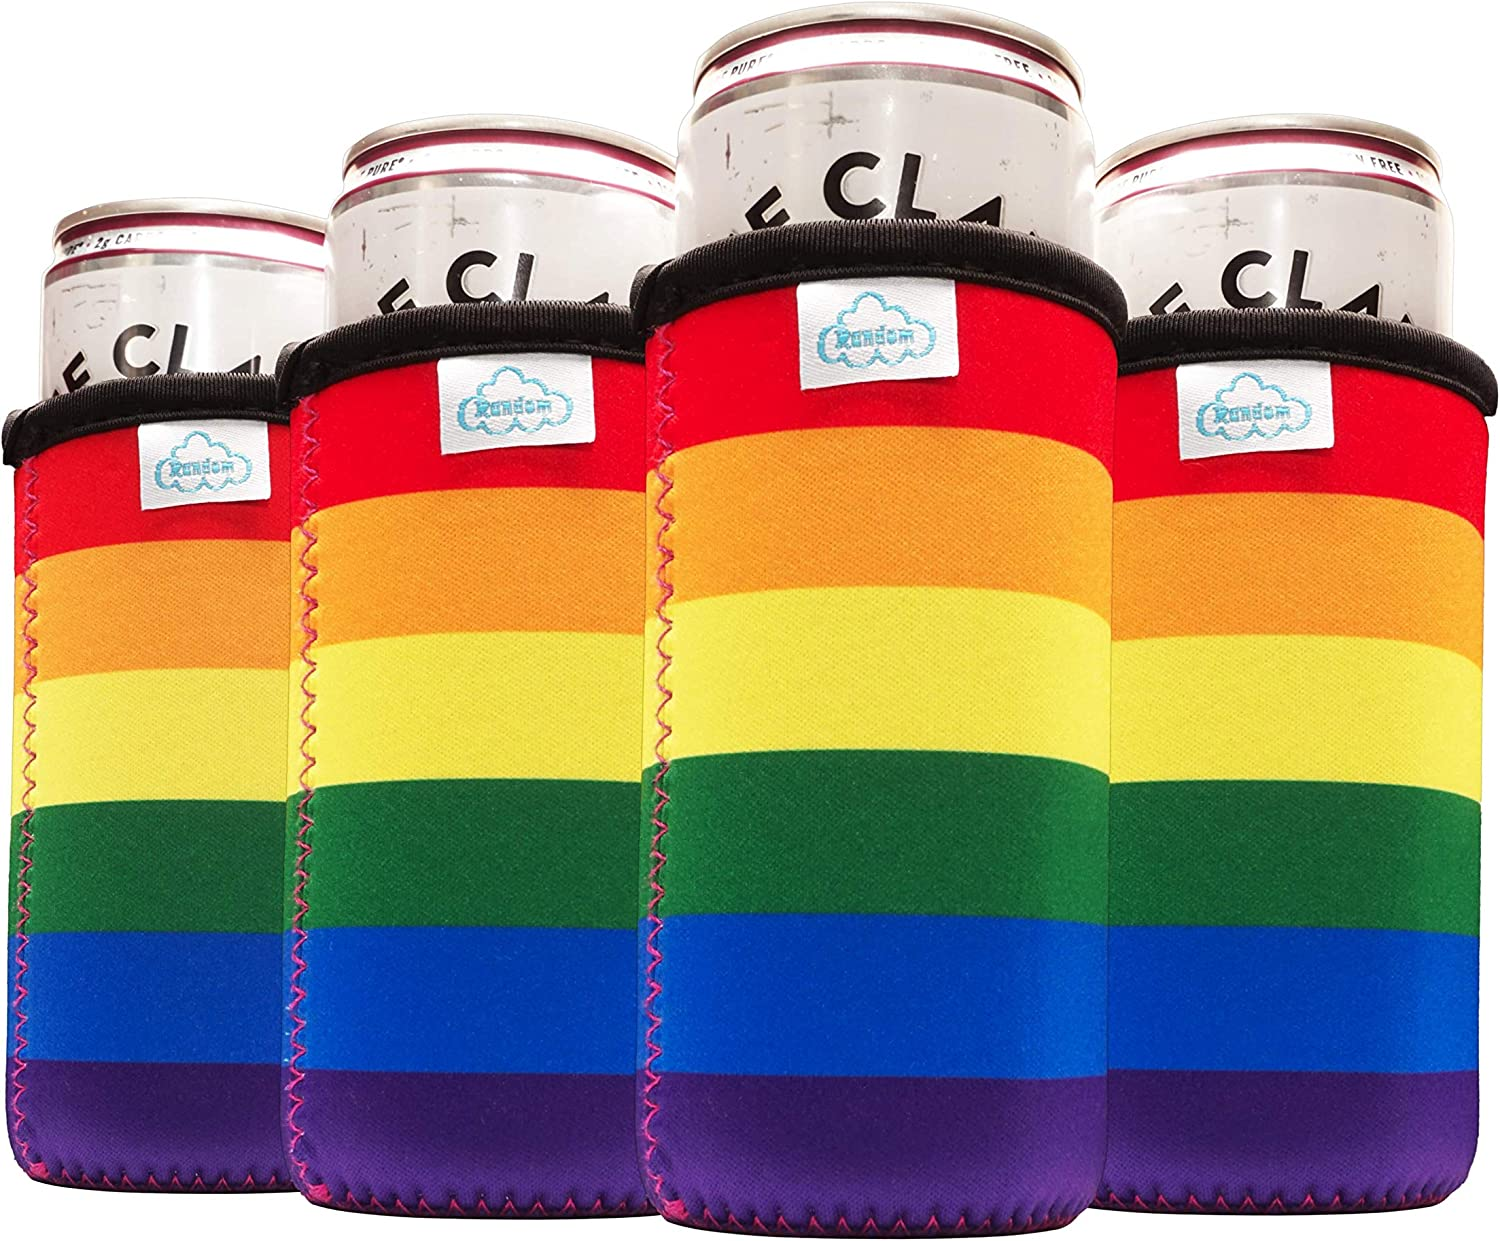 CloudRandom Pride Slim Can Cooler Sleeves (4 pack) for White Claw for 12oz Skinny Can Coolers - Neoprene (Eco-Friendly) Material